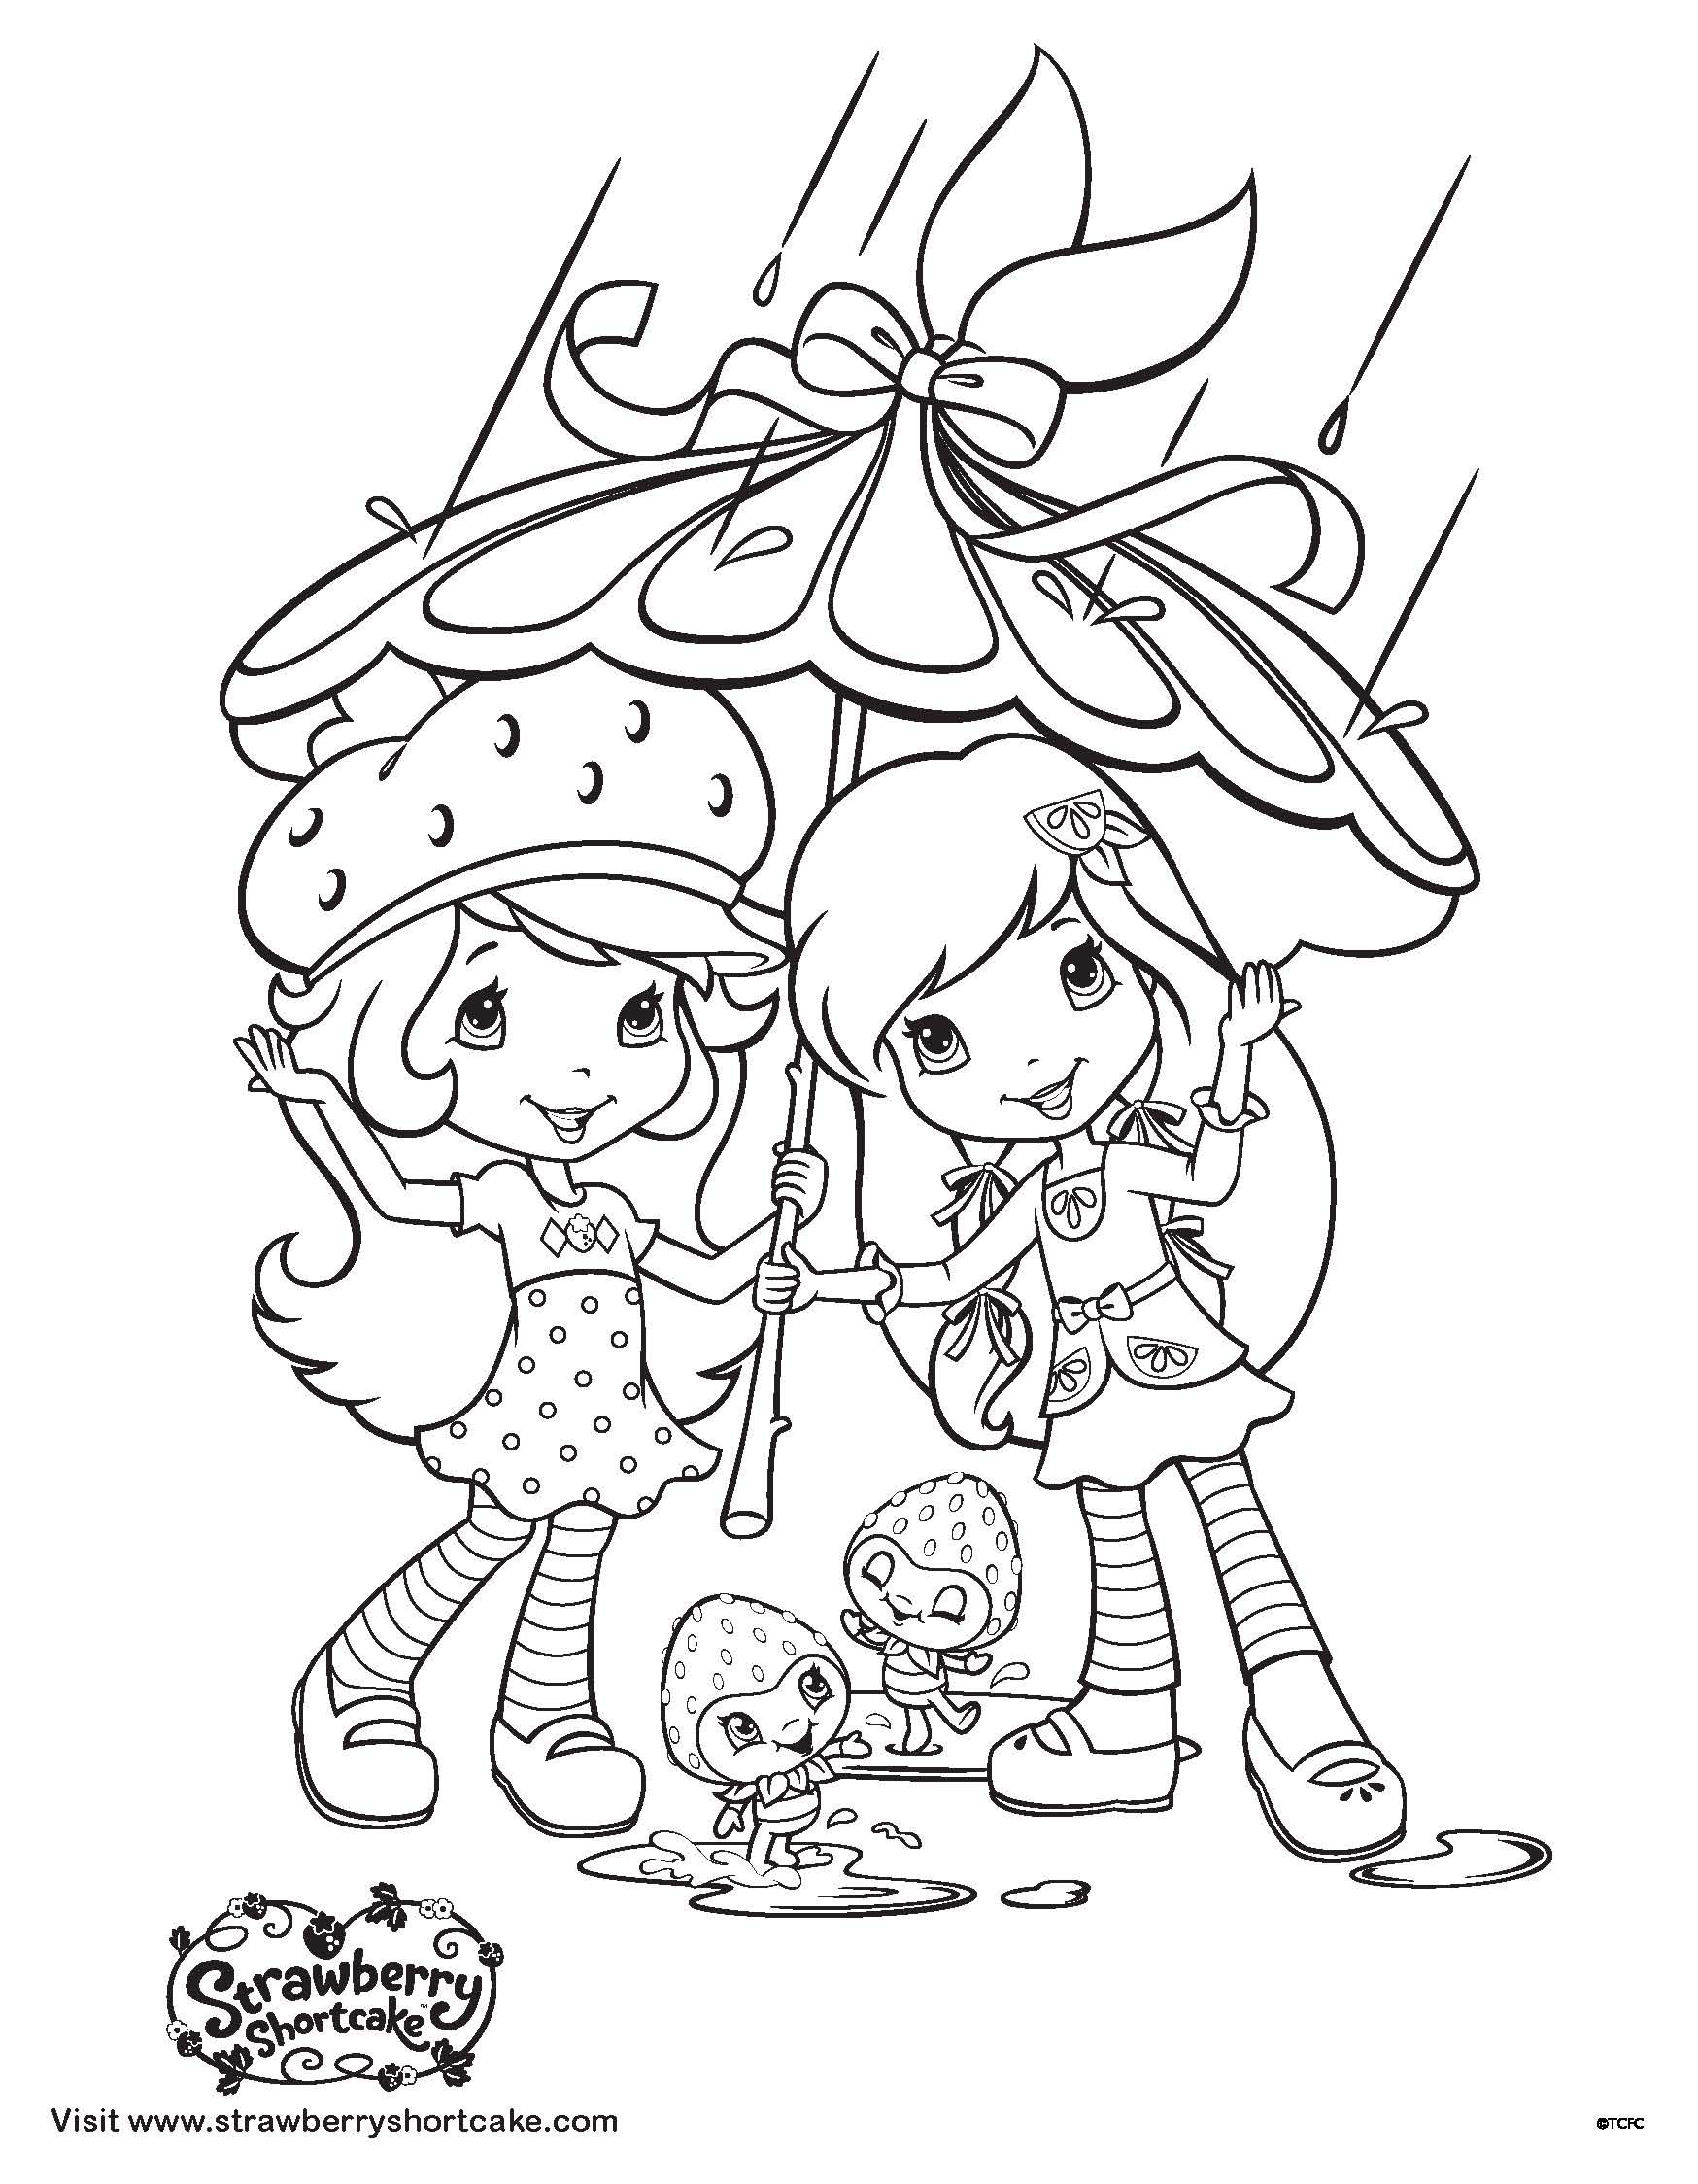 strawberry shortcake coloring sheet april showers bring